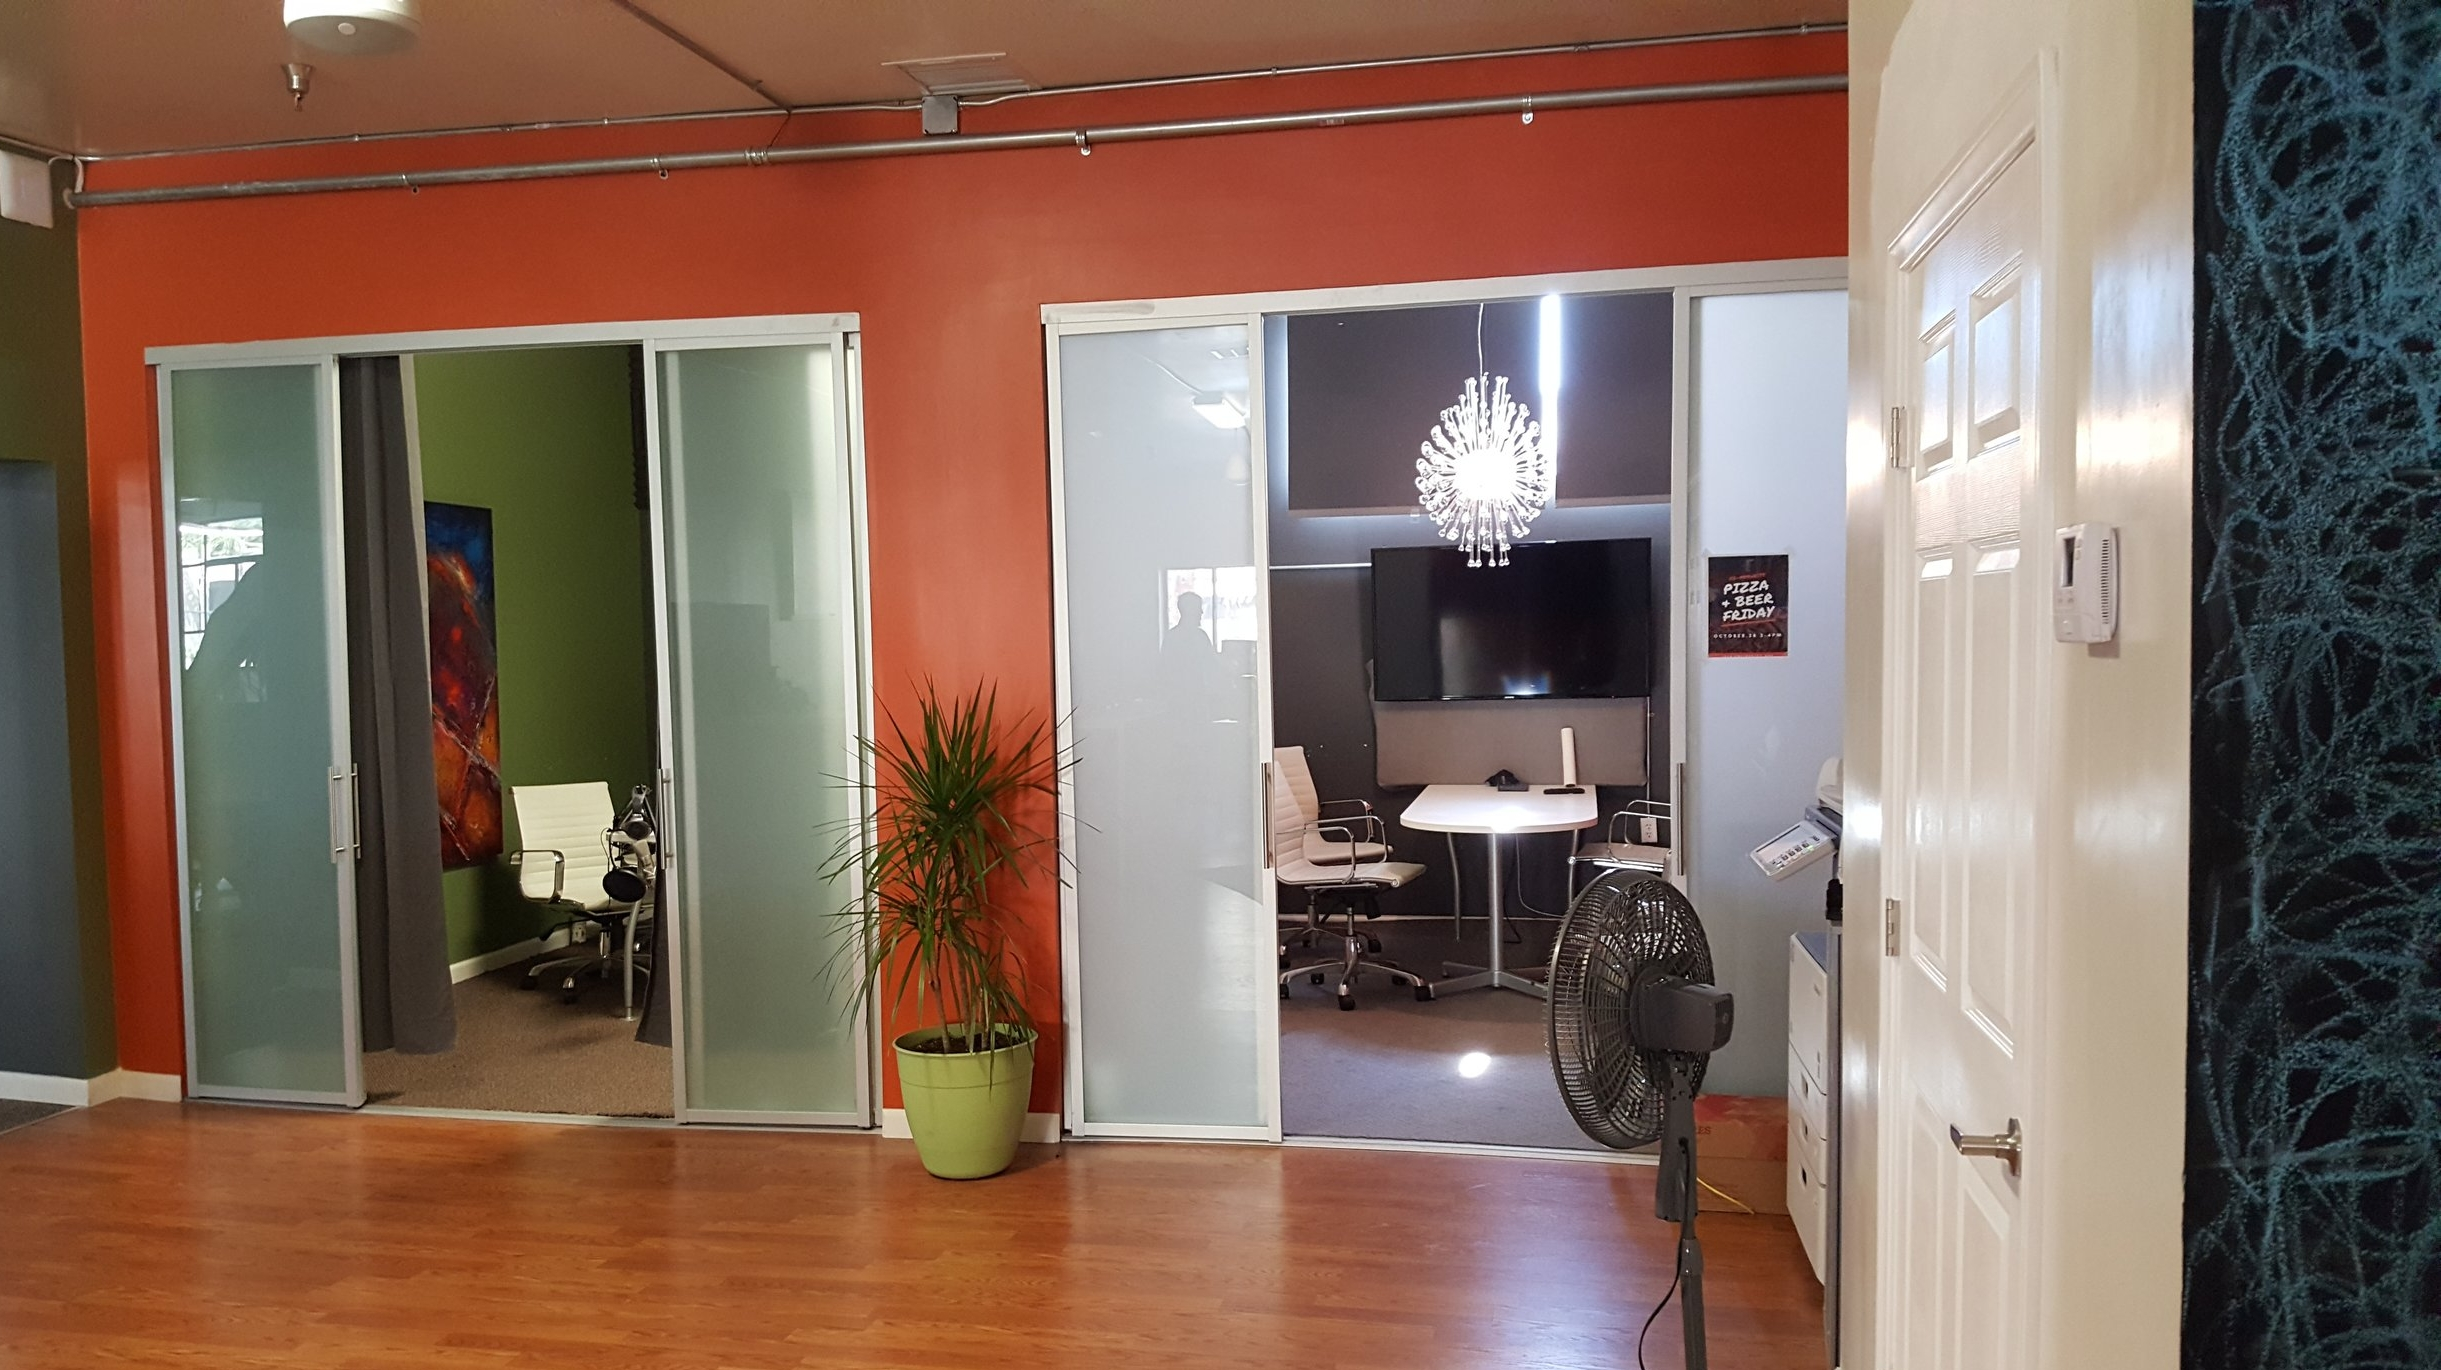 Small meeting rooms are equipped to record podcasts or ideas on whiteboards.